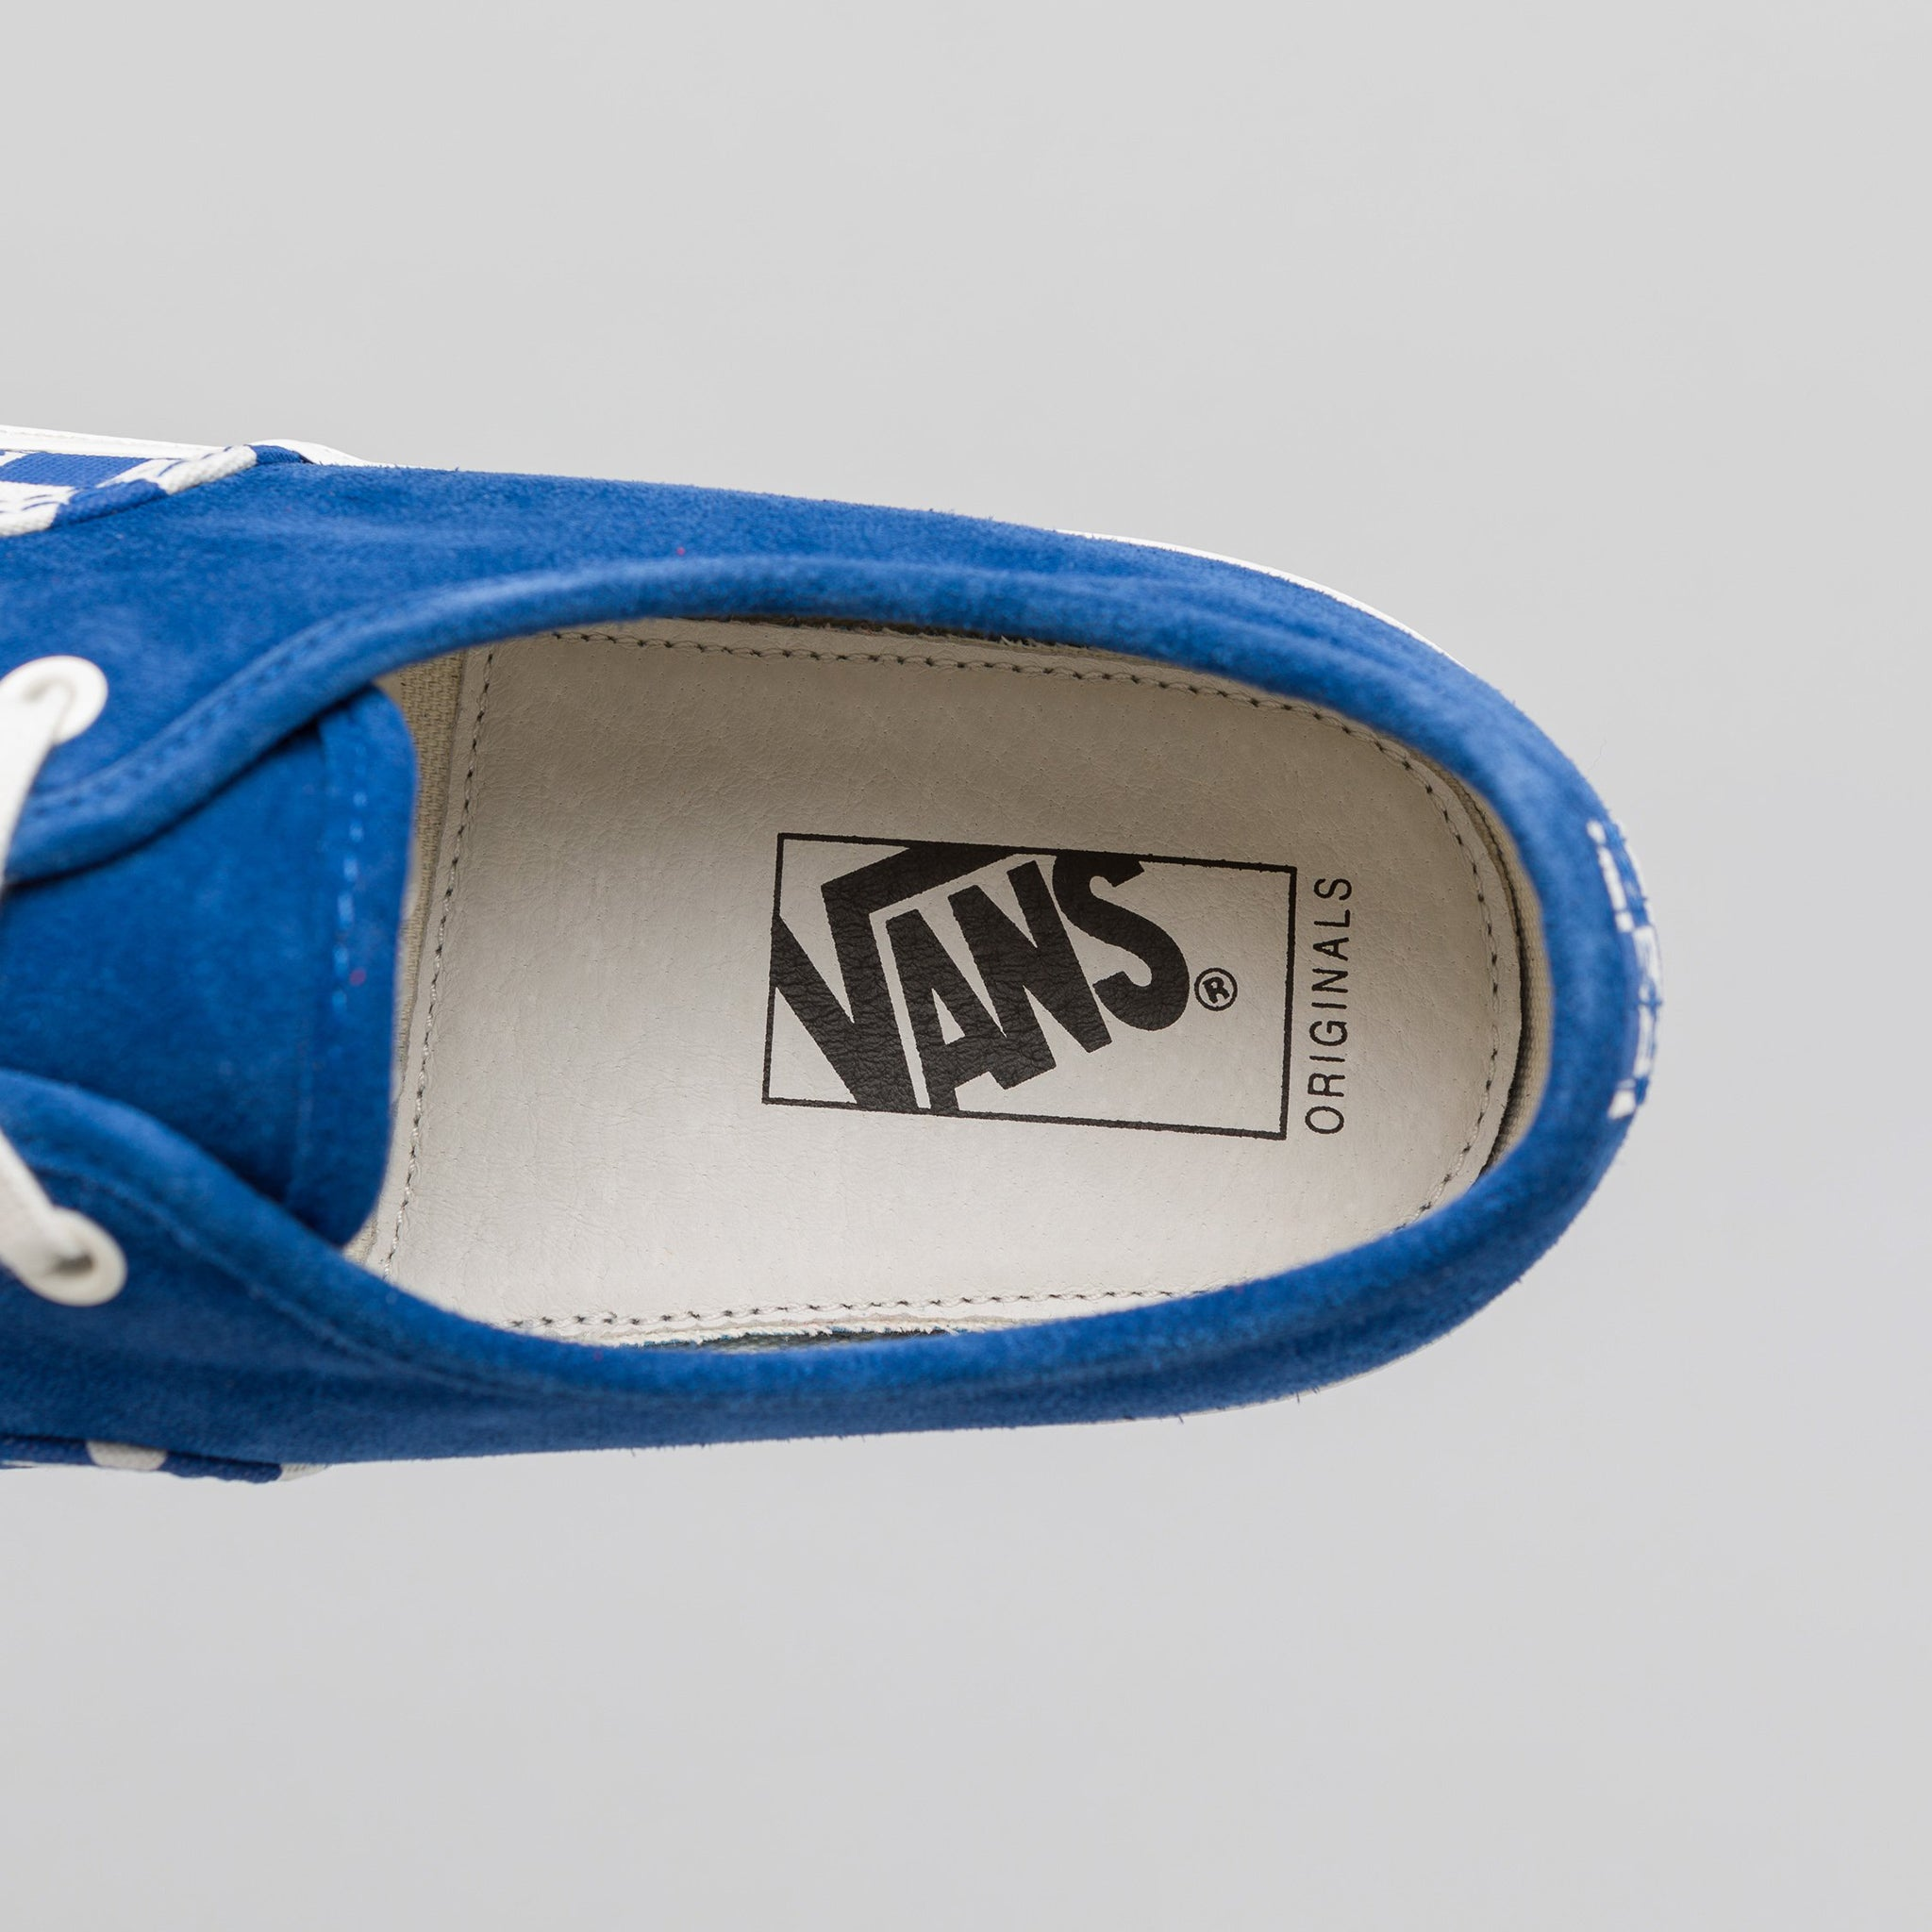 Authentic LX in True Blue